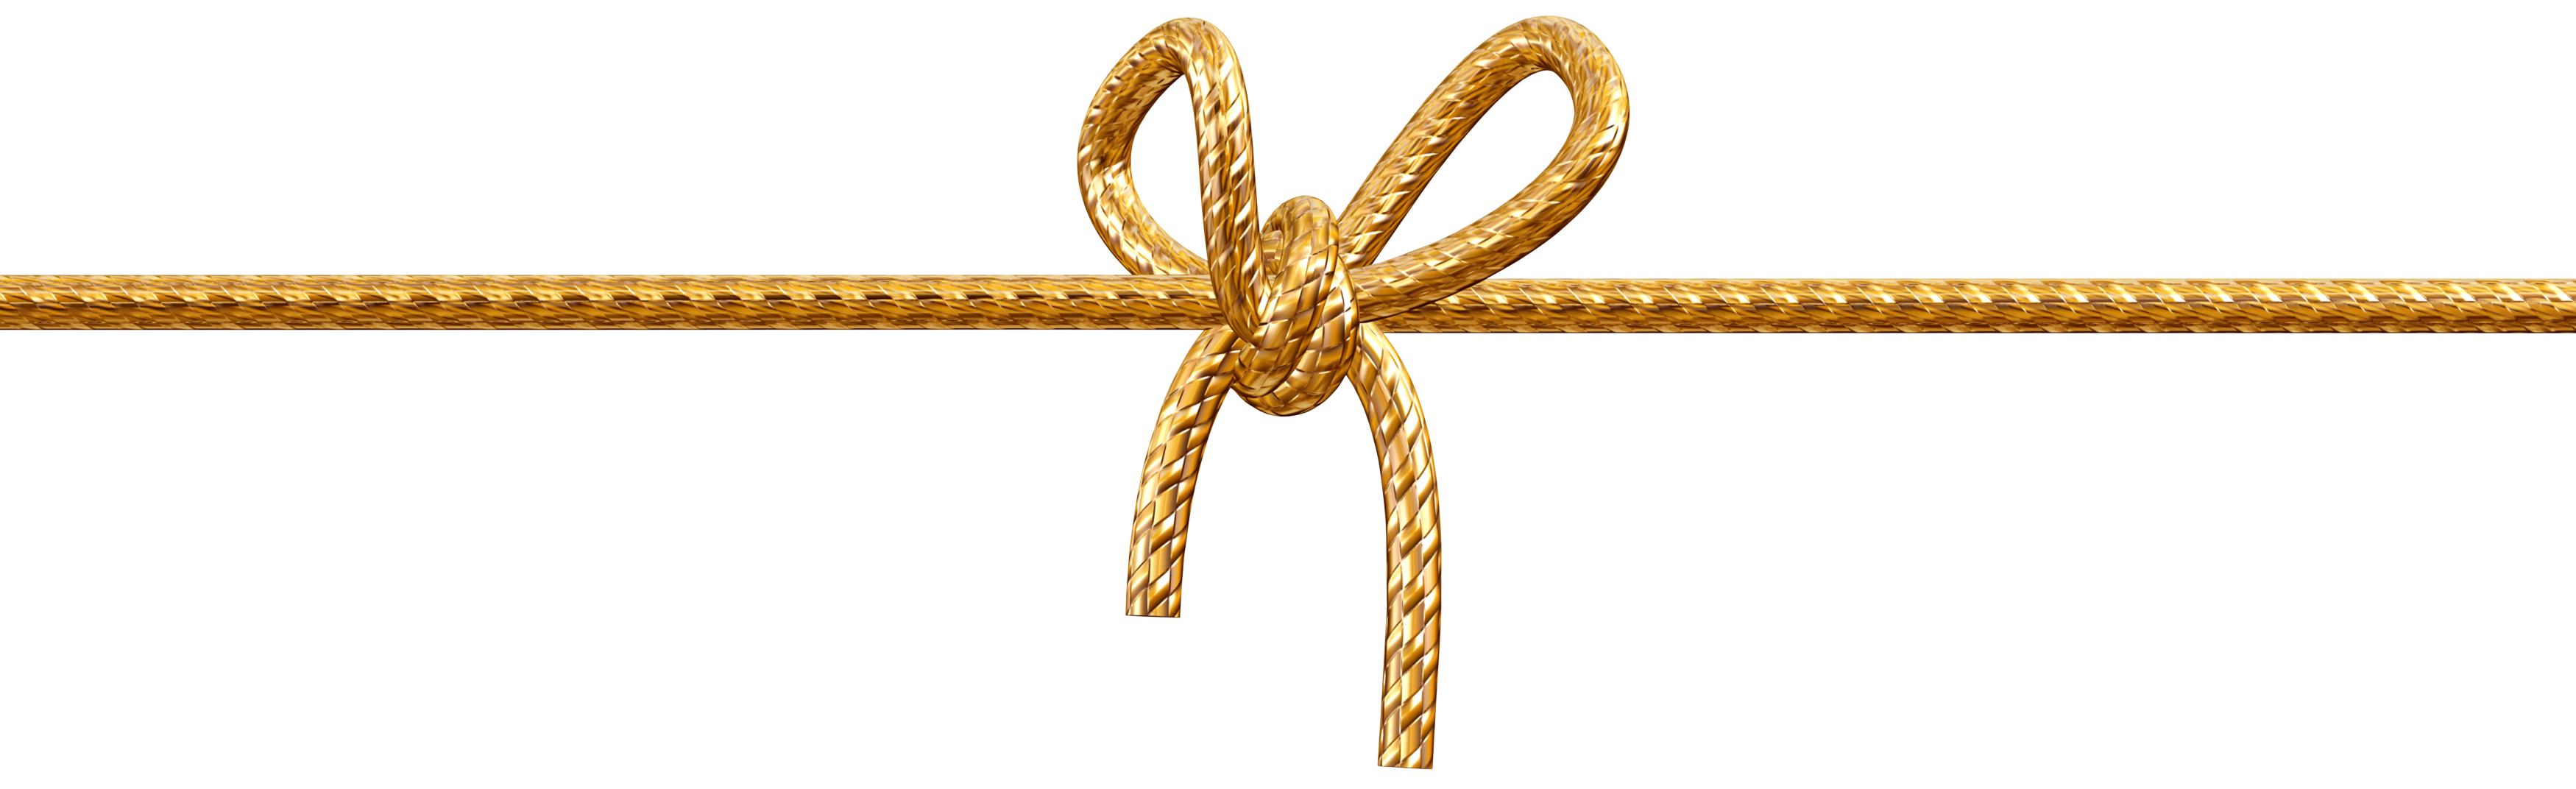 Rope clipart png clip art free download Rope Clipart PNG - Picpng clip art free download